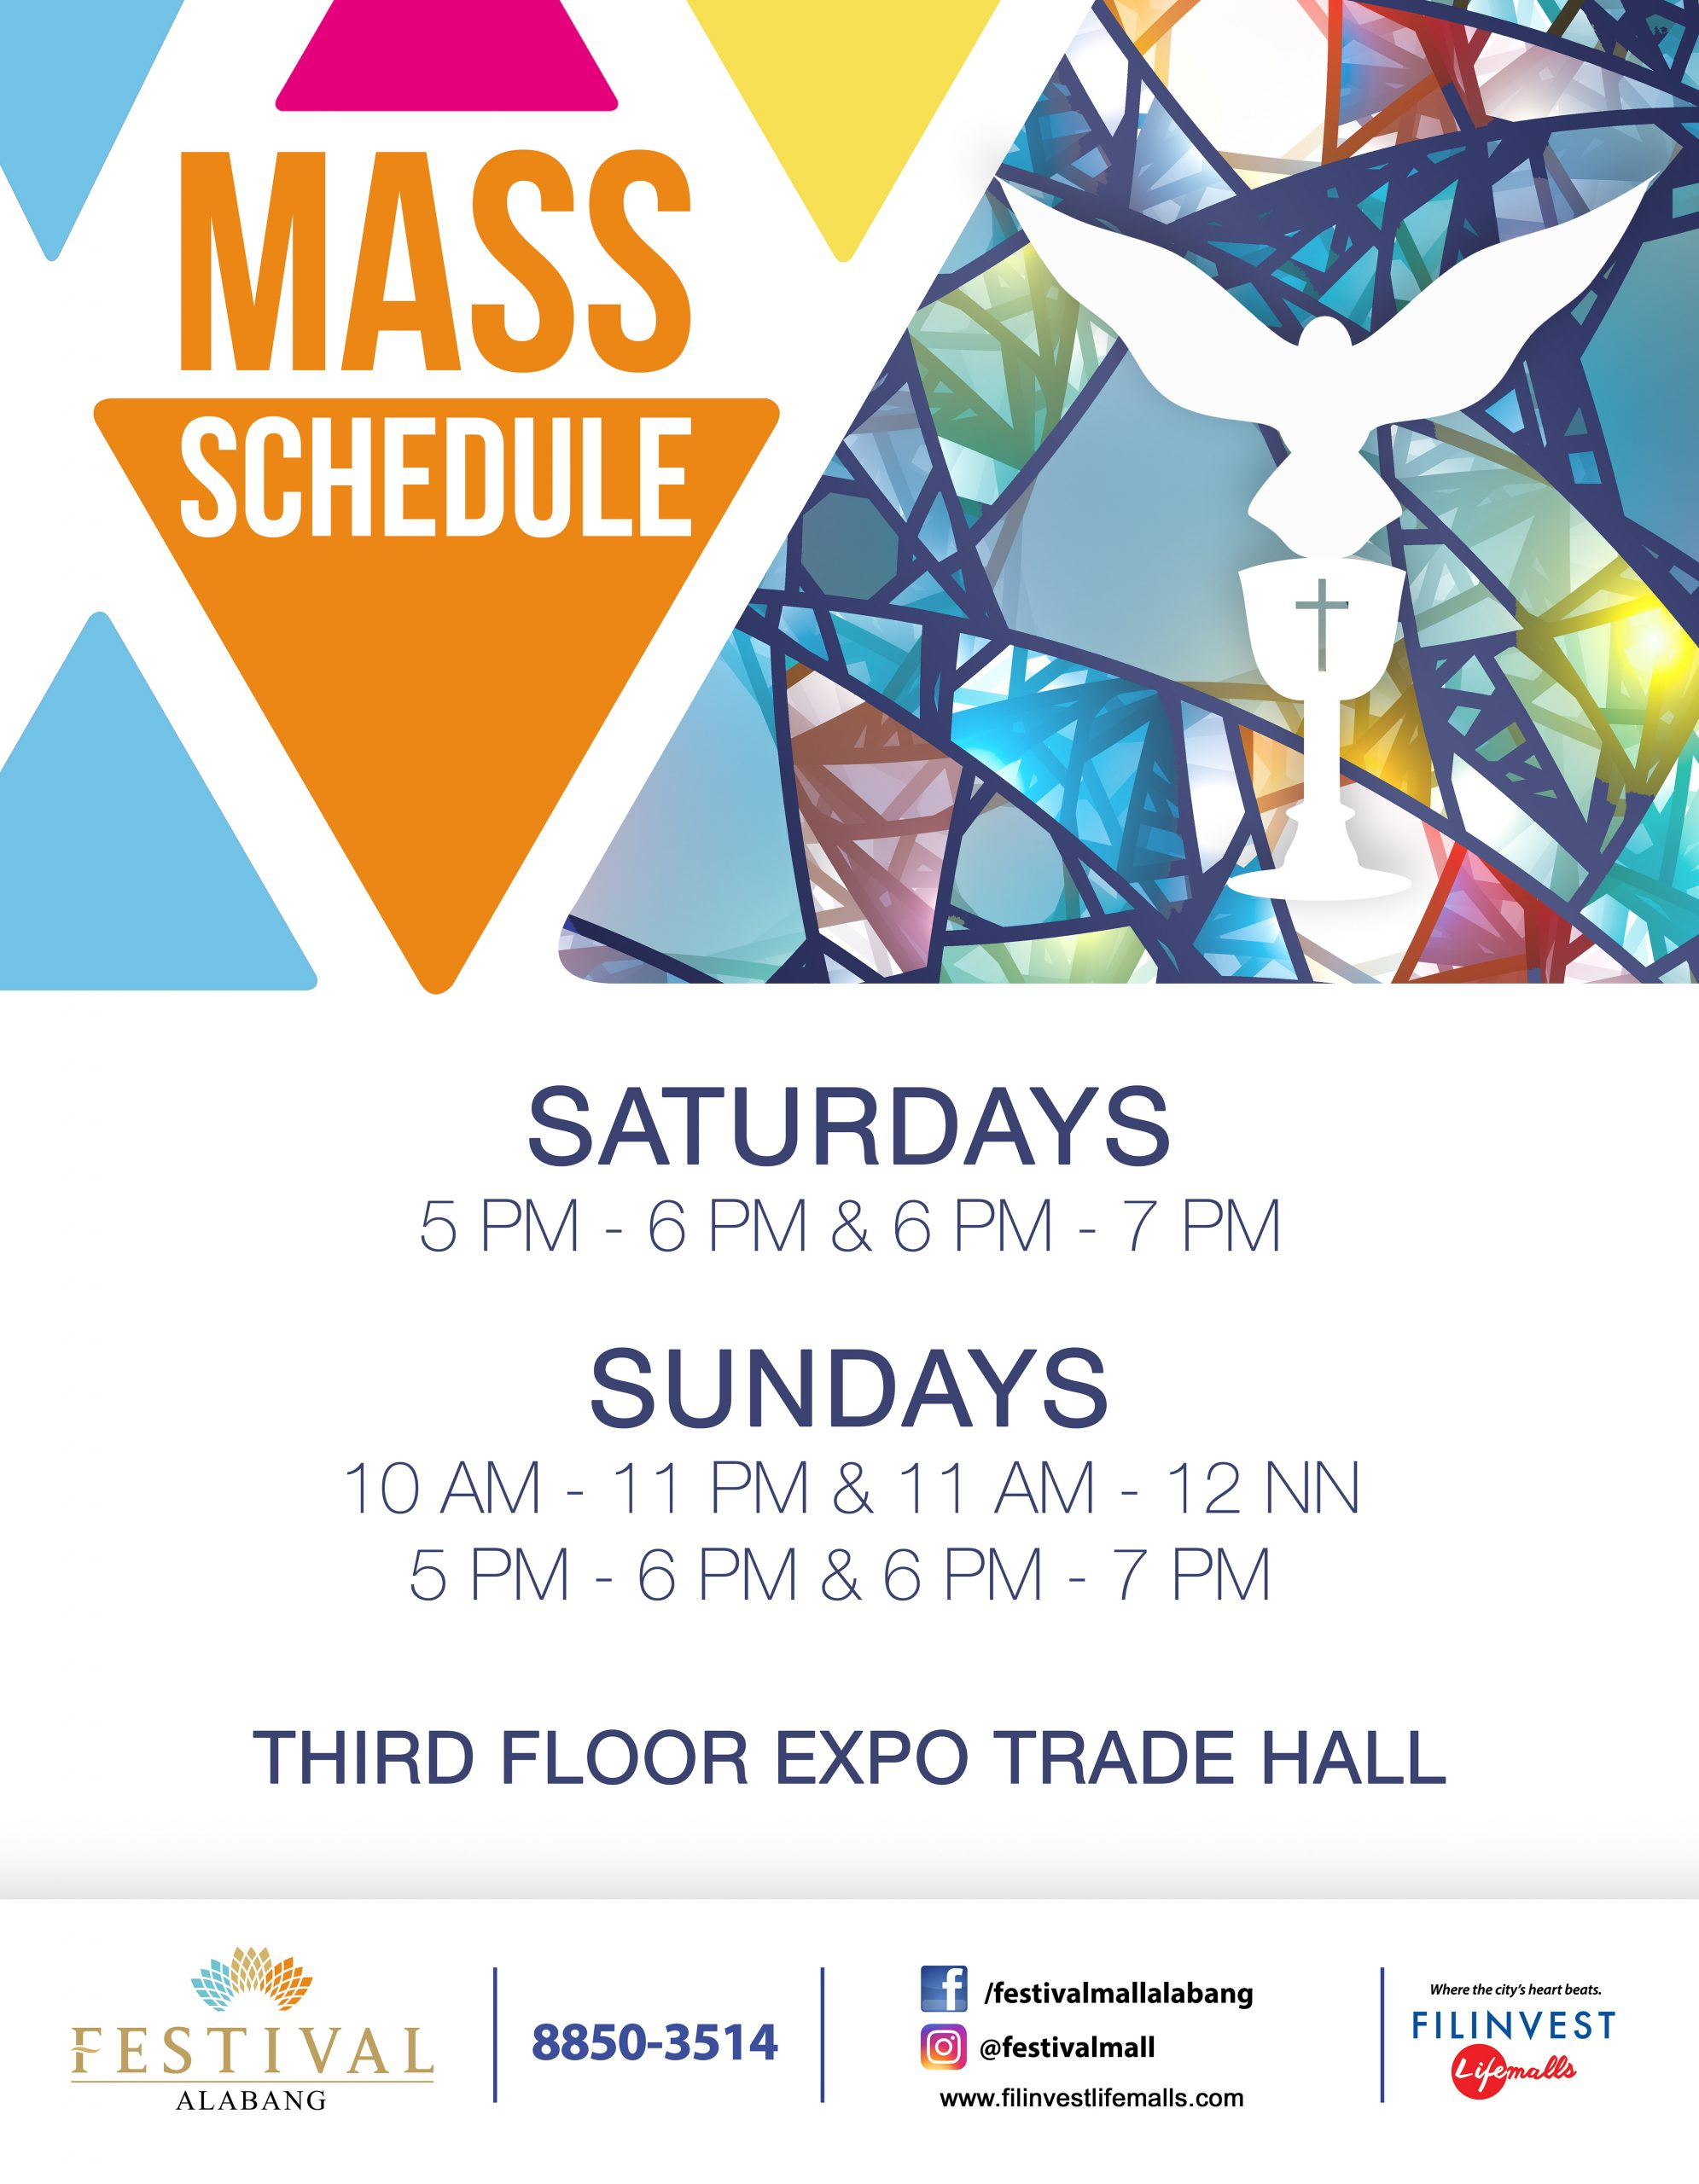 CELEBRATE THE HOLY MASS AT FESTIVAL MALL